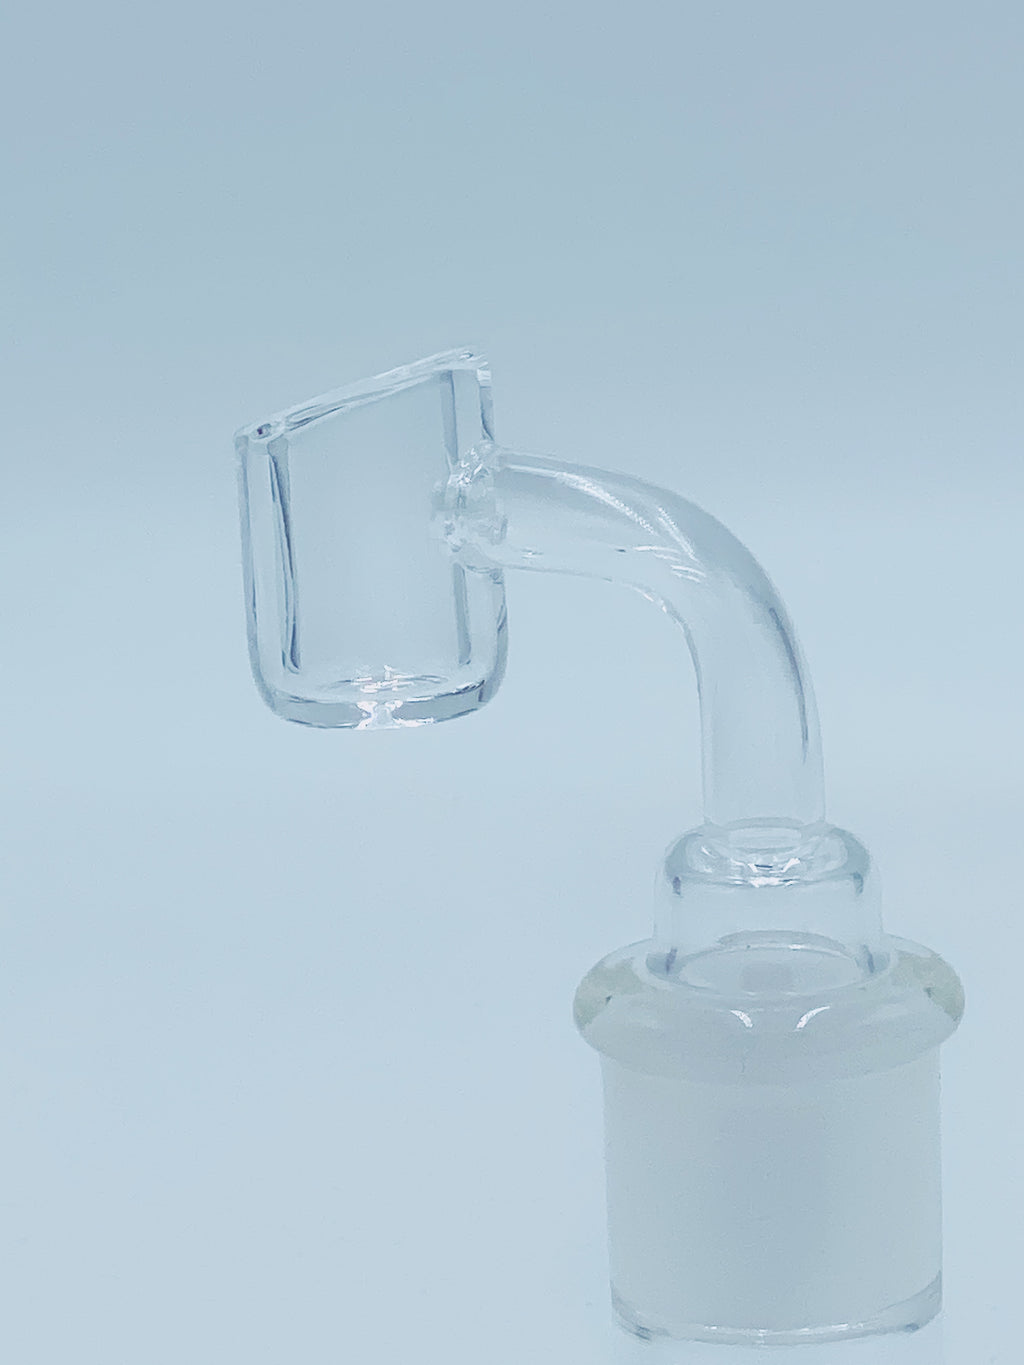 18MM MALE ULTRA THICK QUARTZ BANGER - Smoke Country - Land of the artistic glass blown bongs